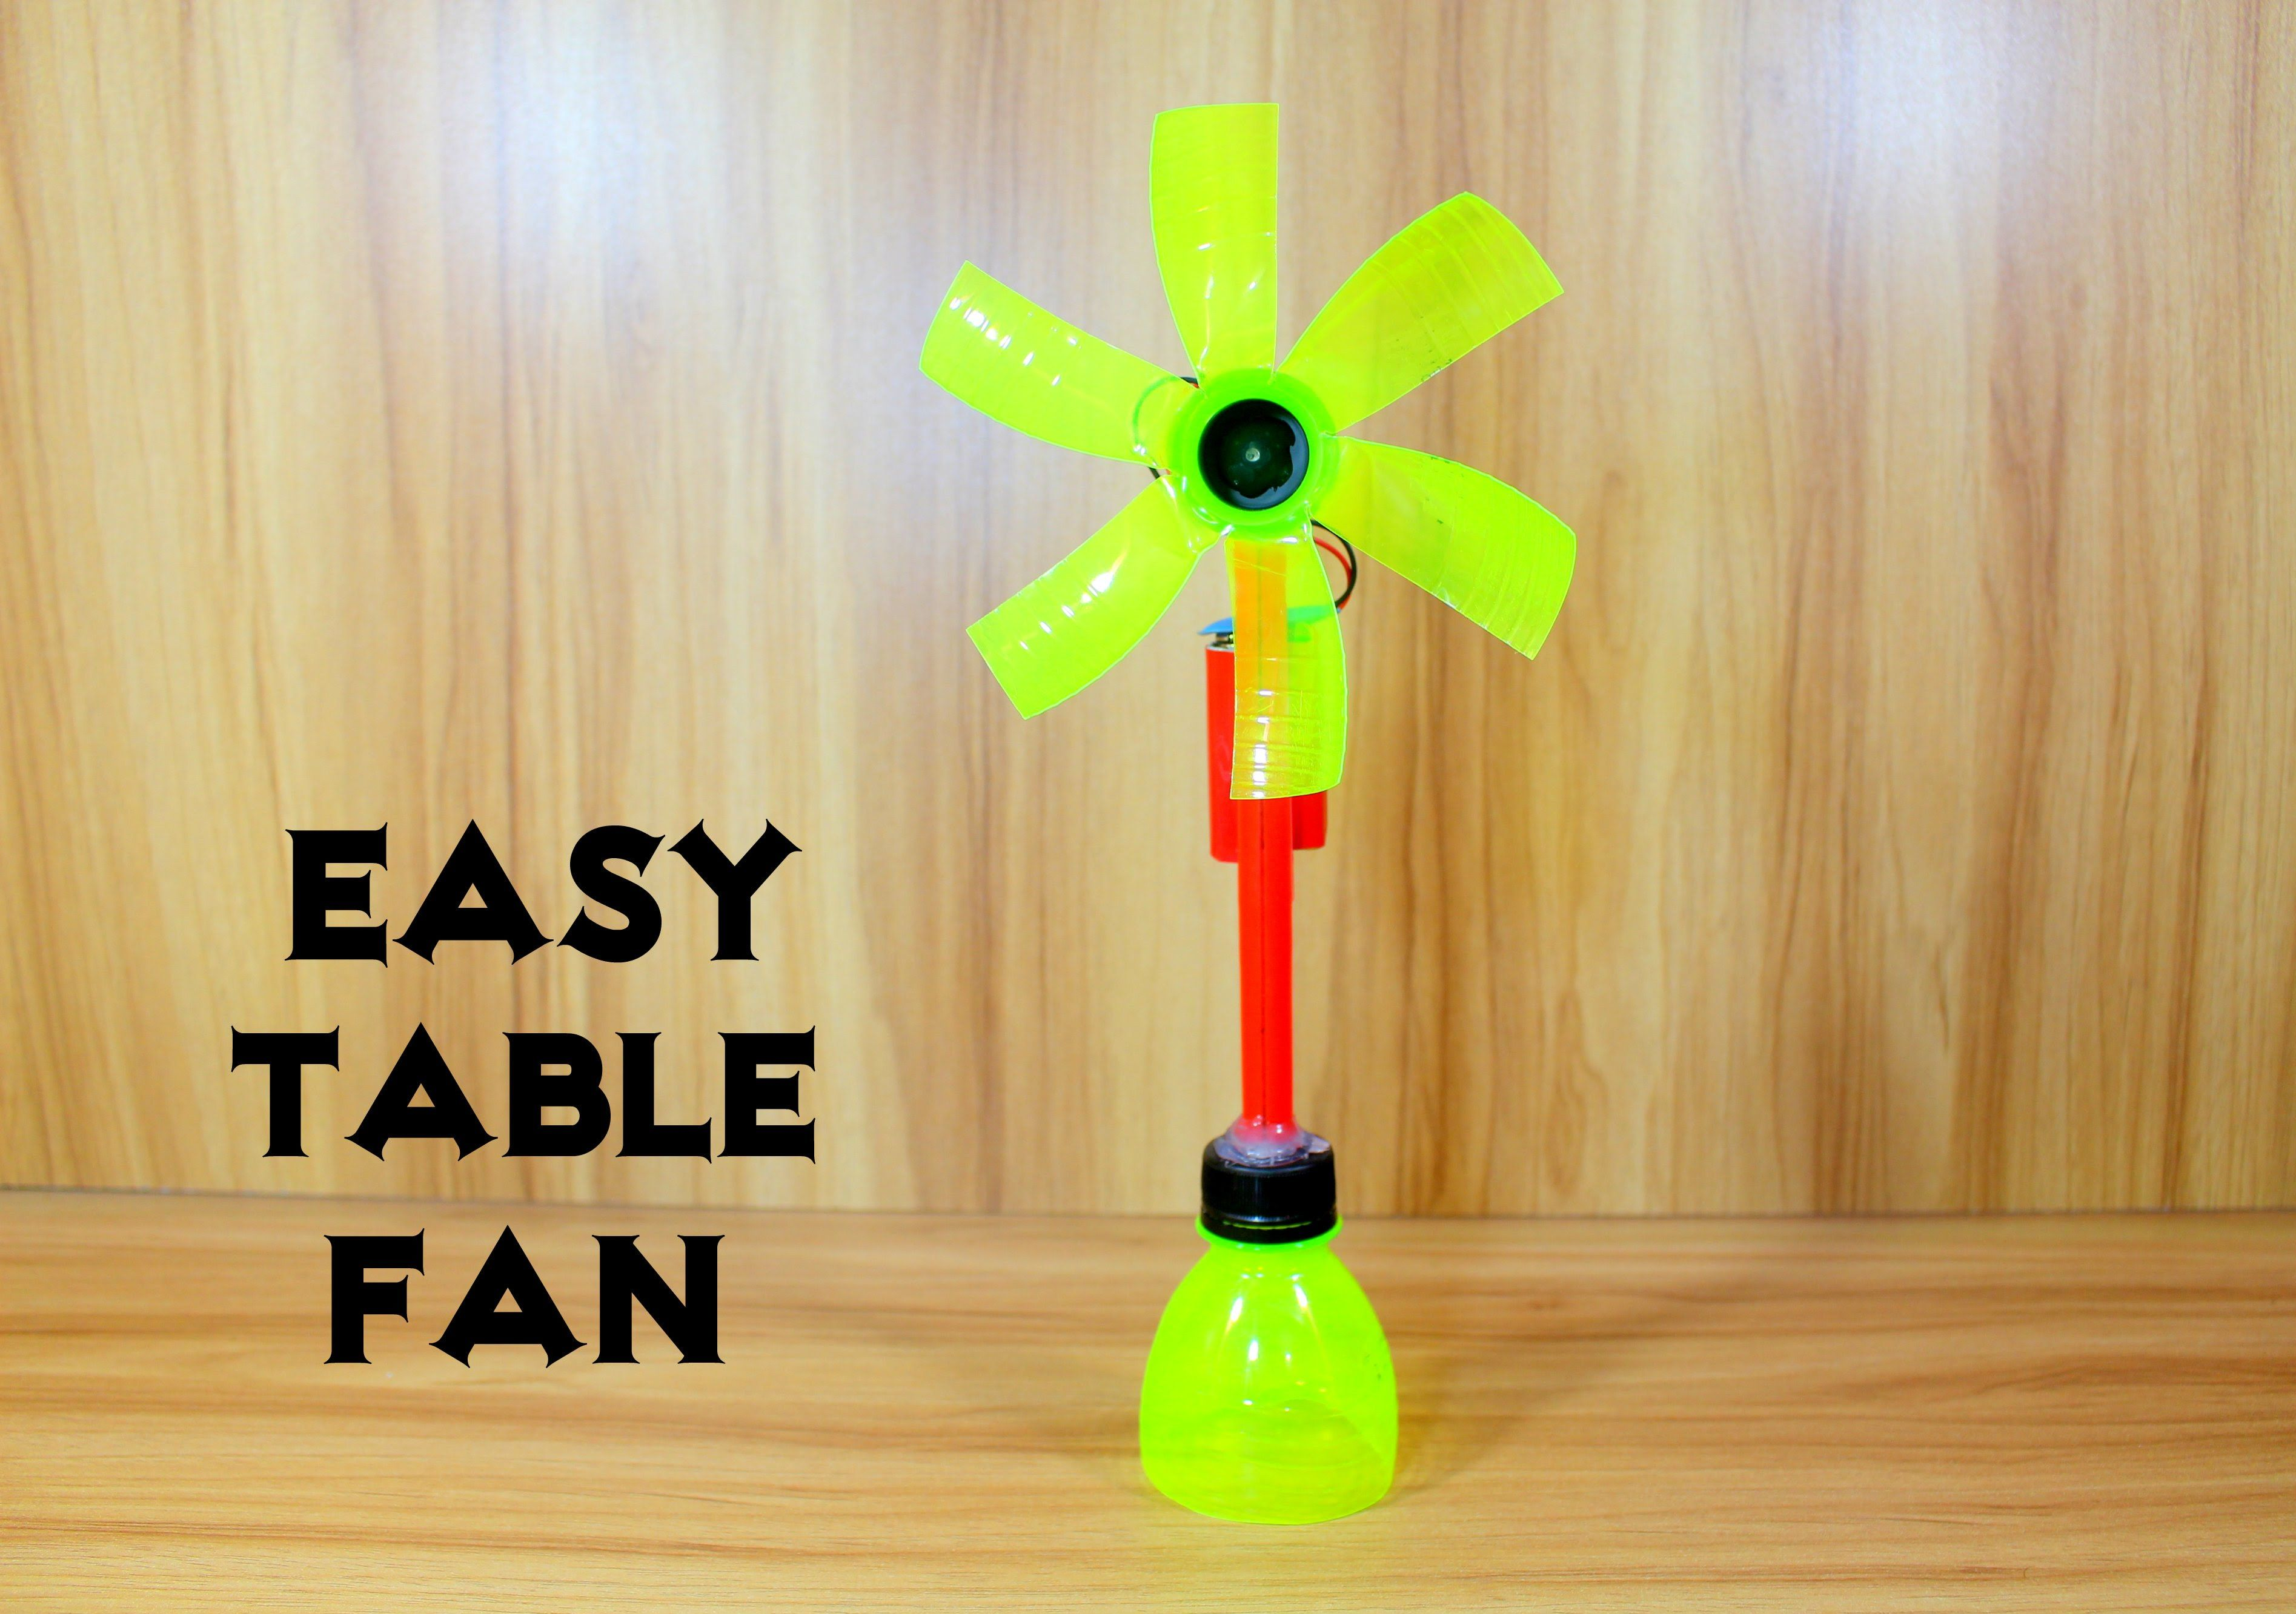 How to Make an Electric Table Fan